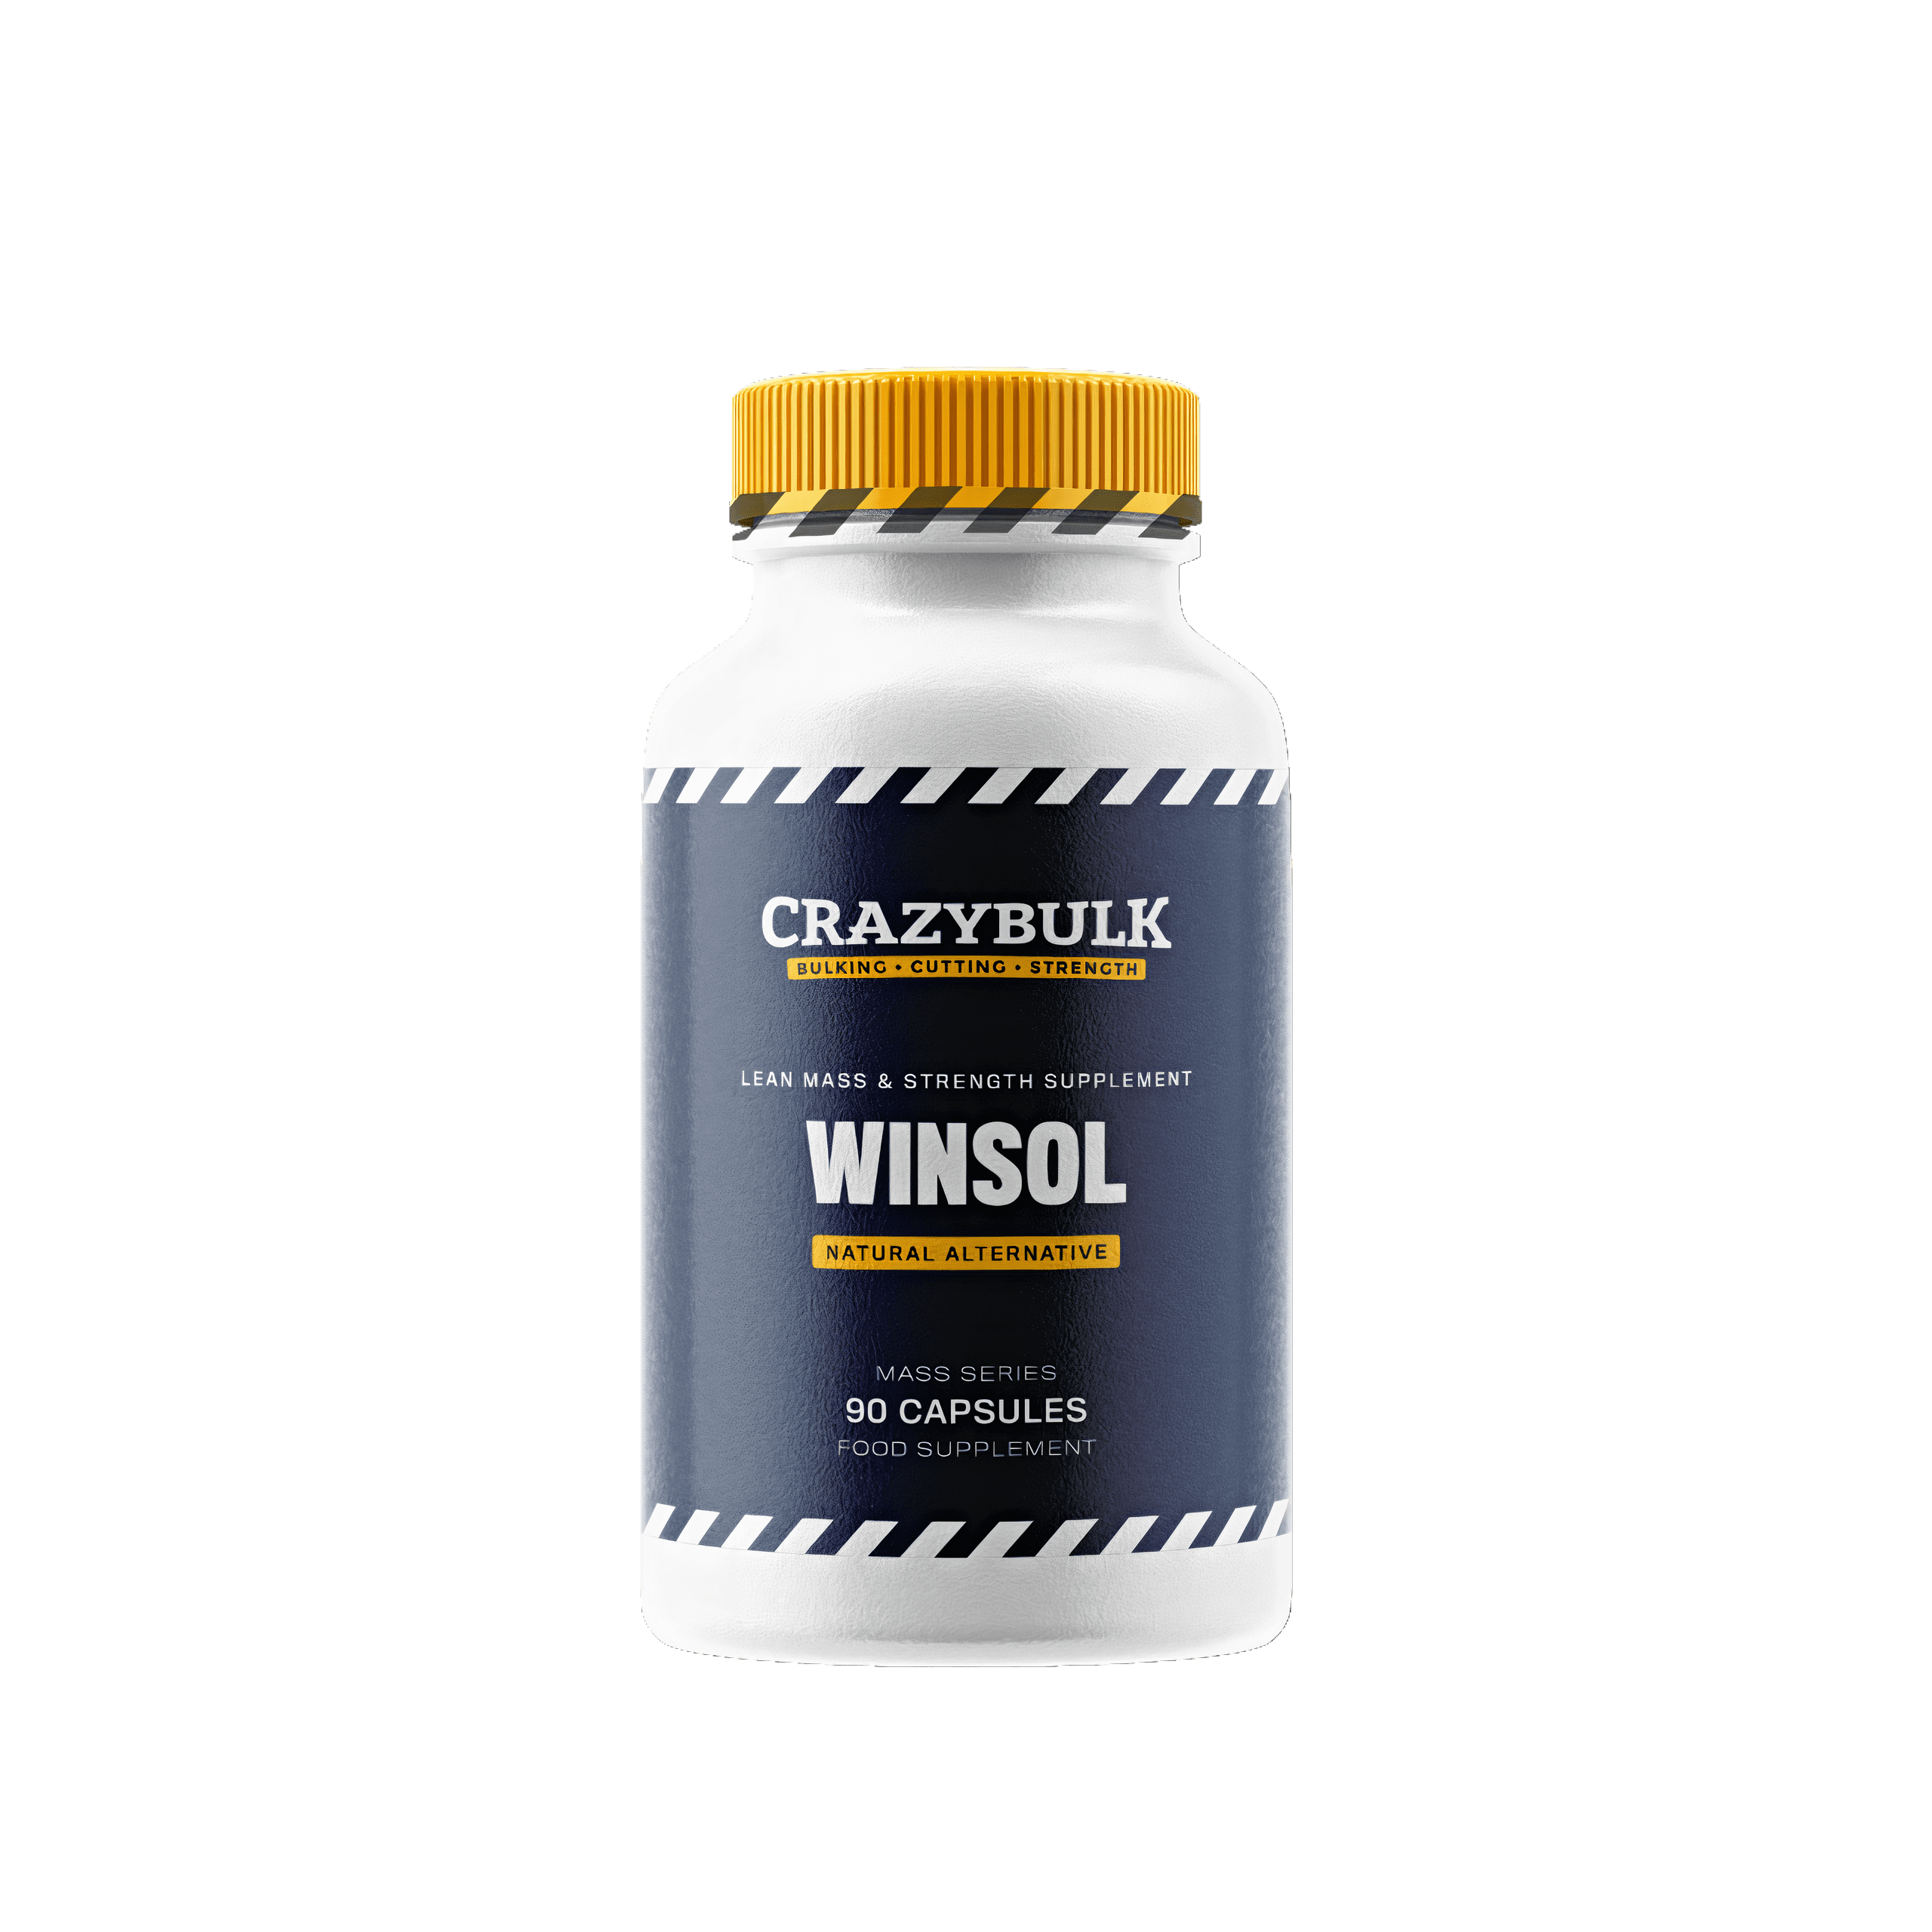 Winsol best steroid for cutting fat